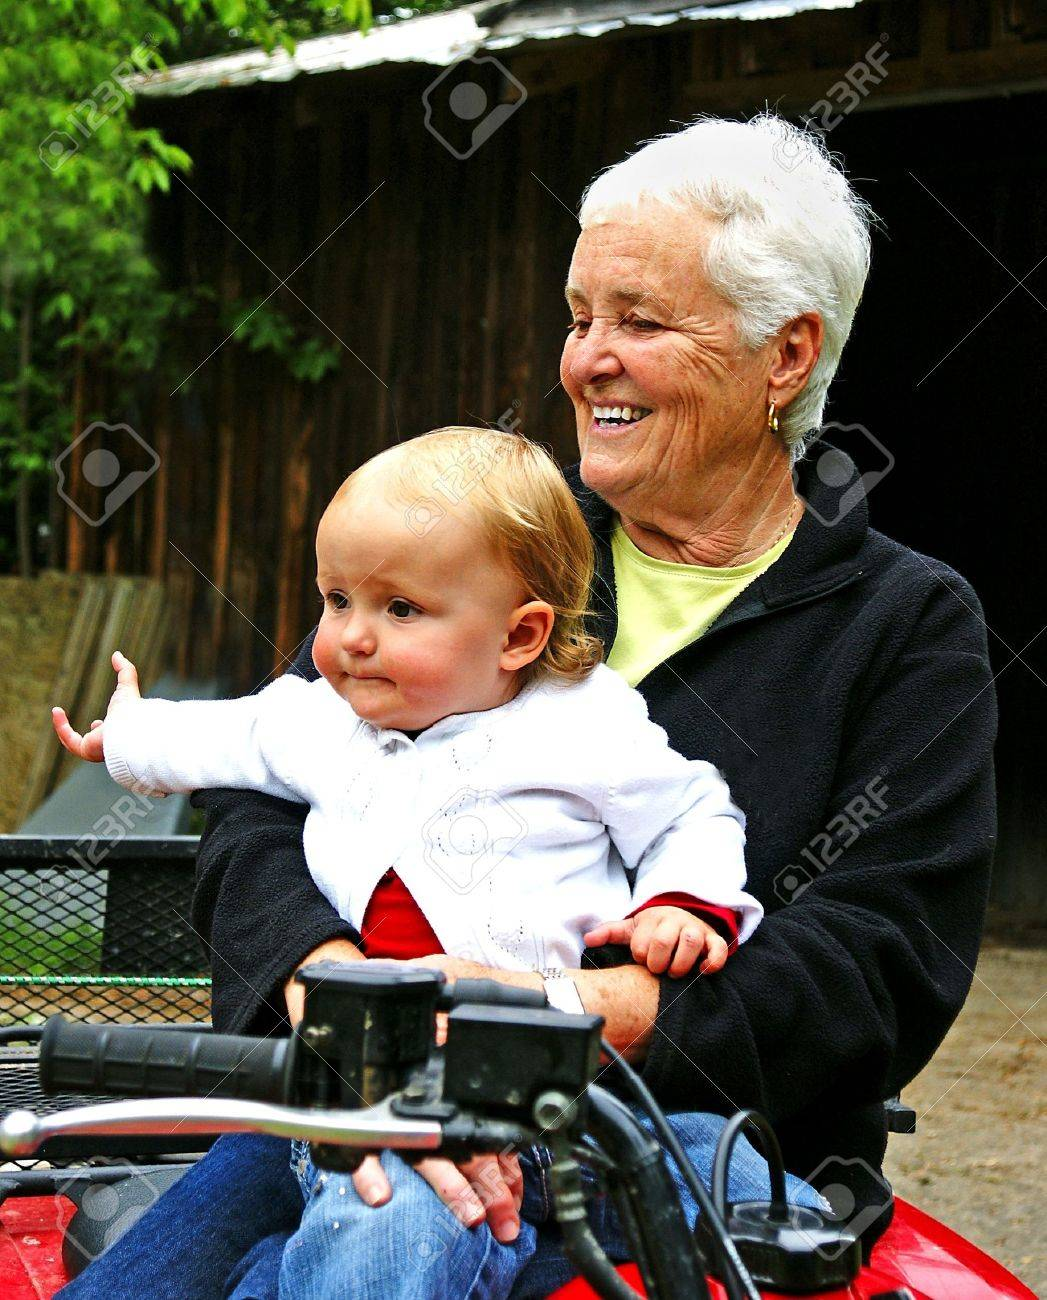 A toddler sits with her grandmother in front of a barn - 3223191